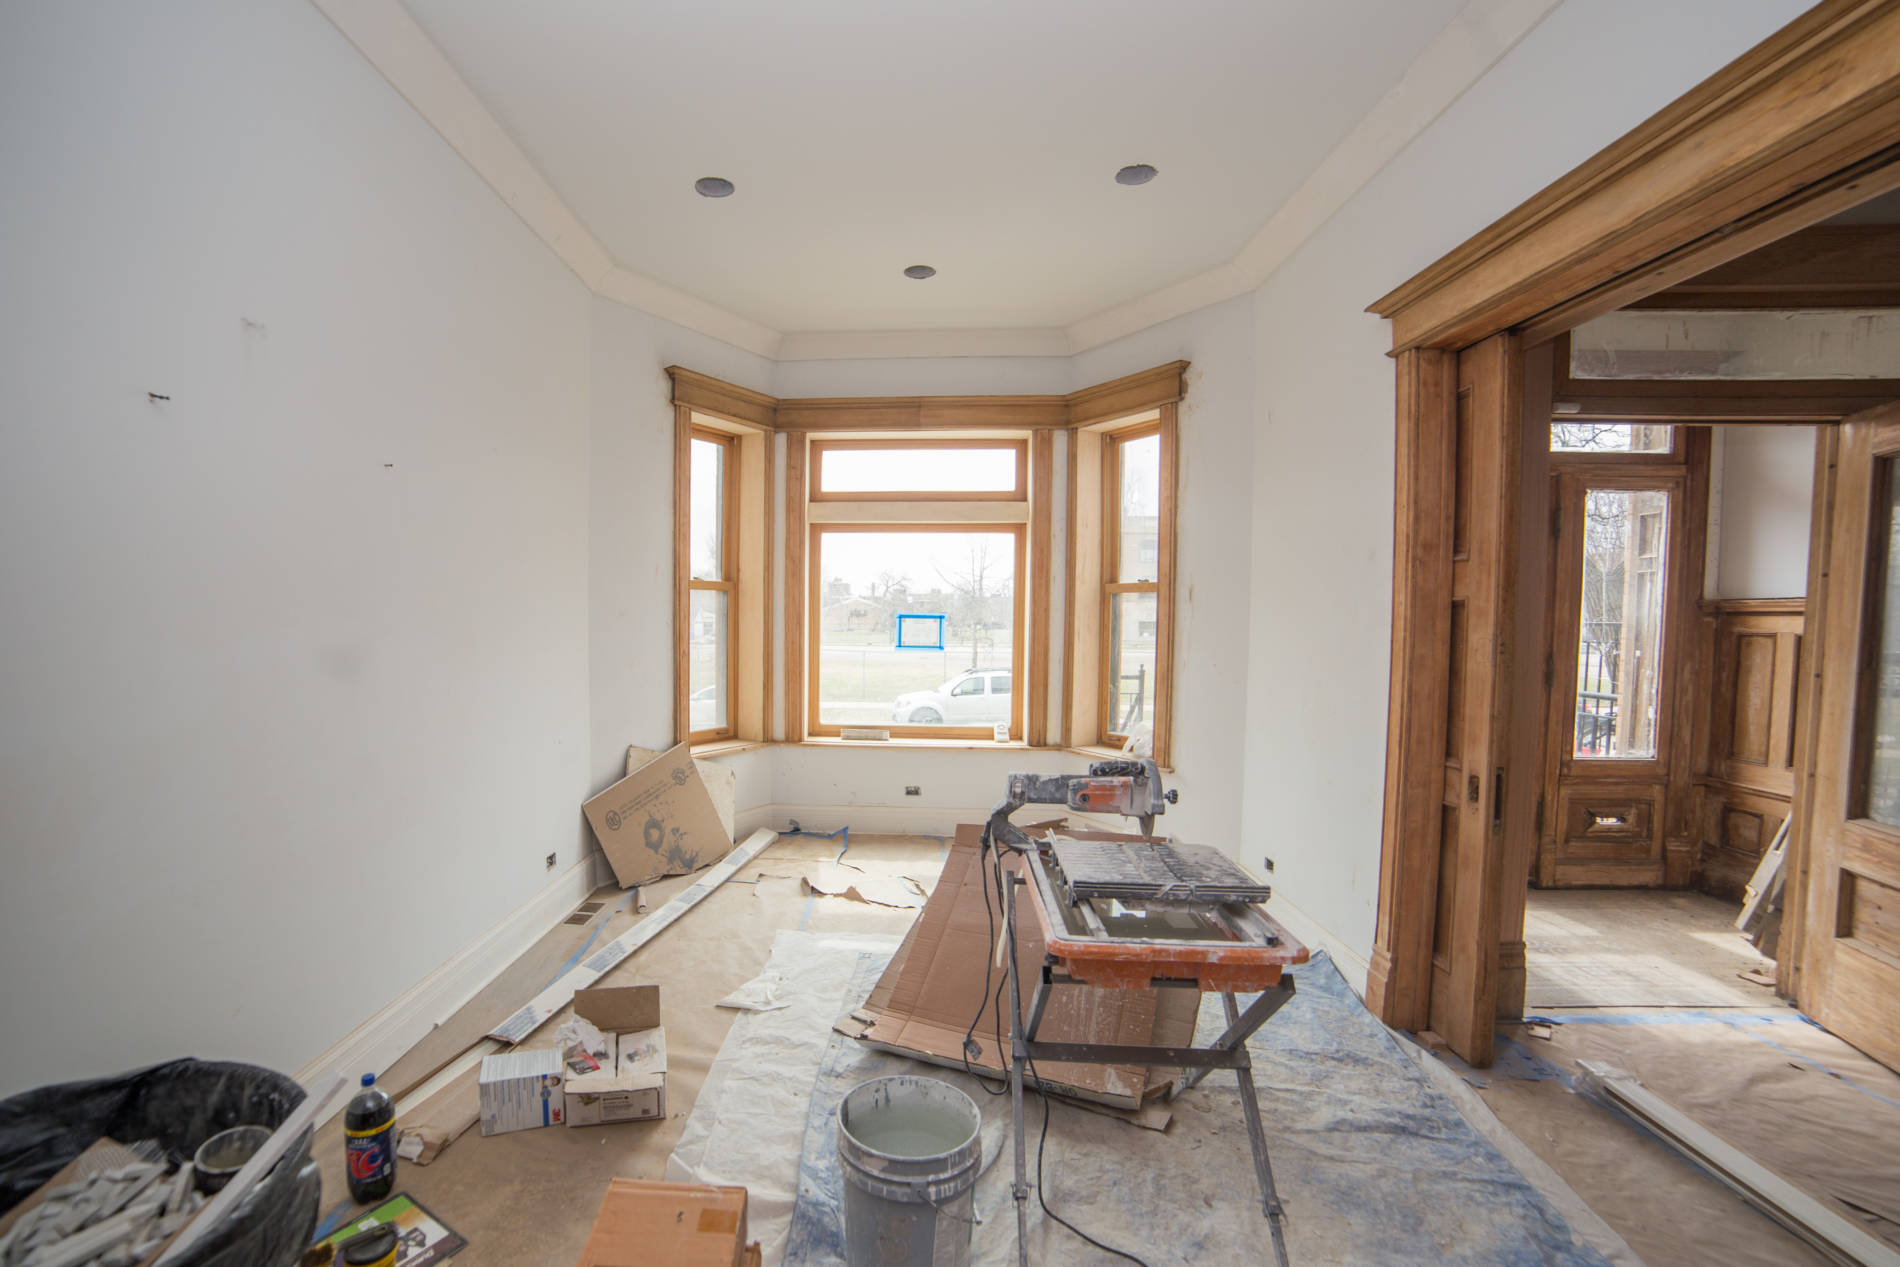 3-20-17 822 E 42nd St Dining Room pre paint